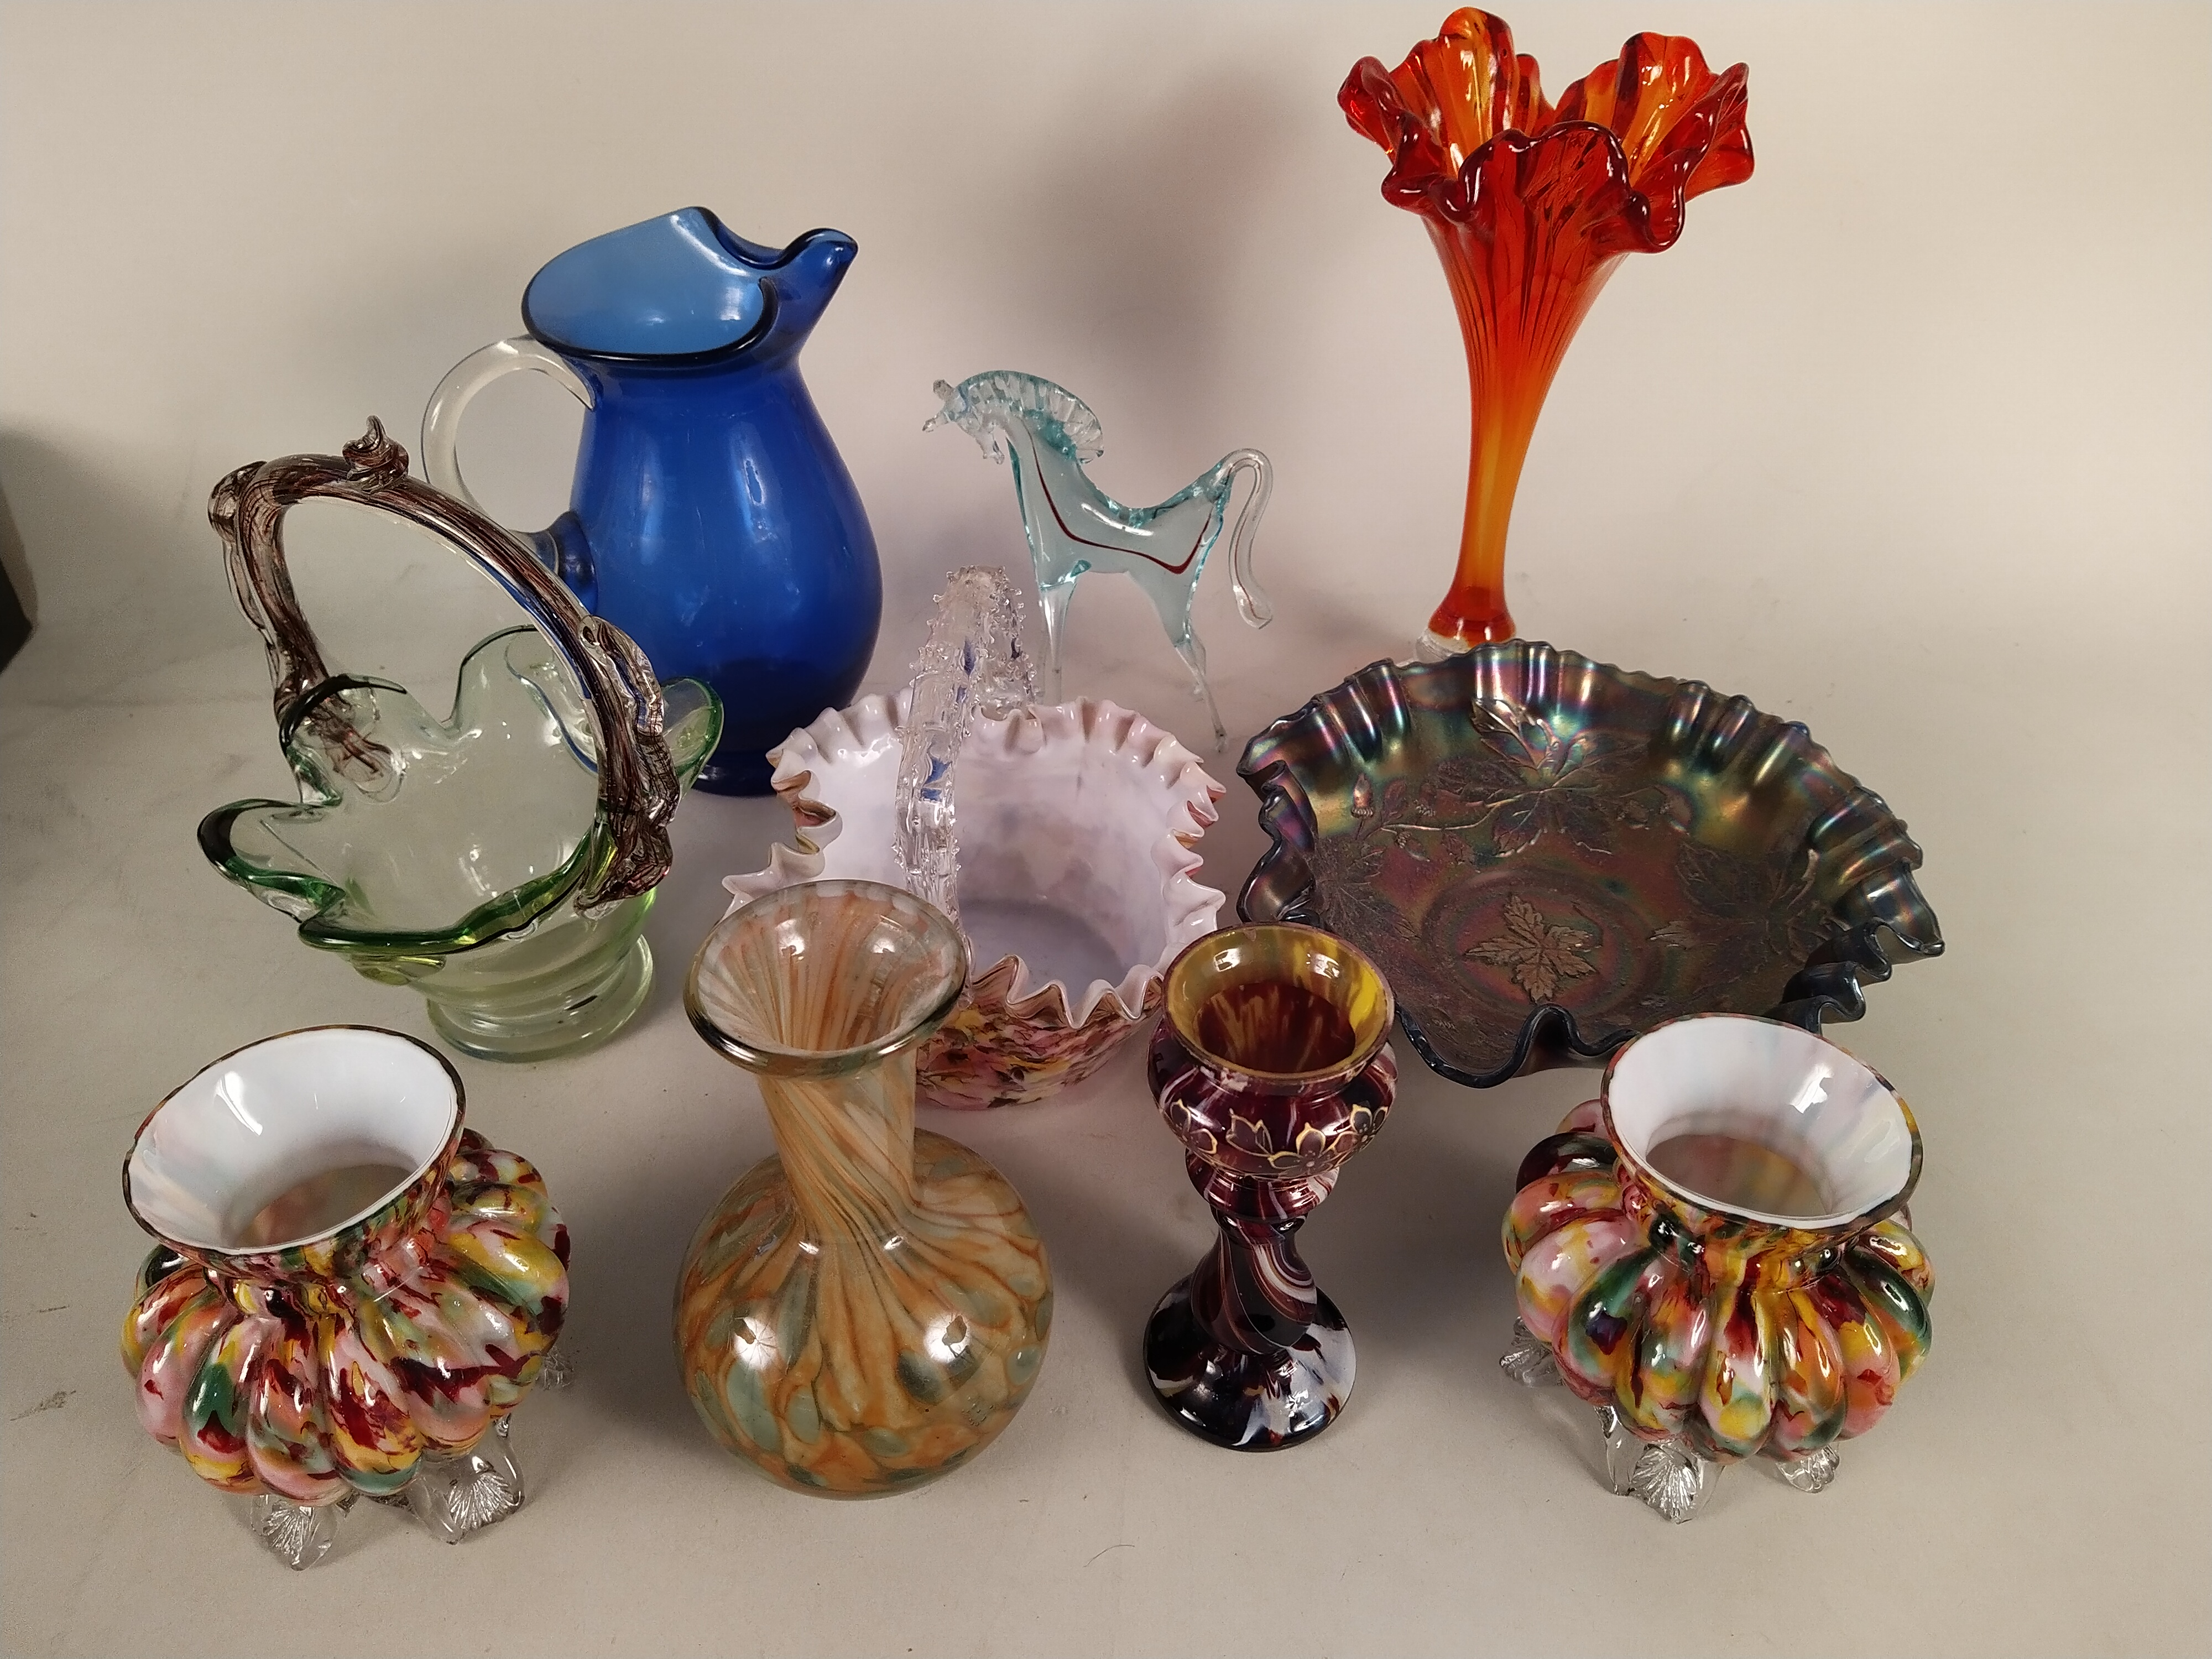 Mixed coloured glass including Carnival